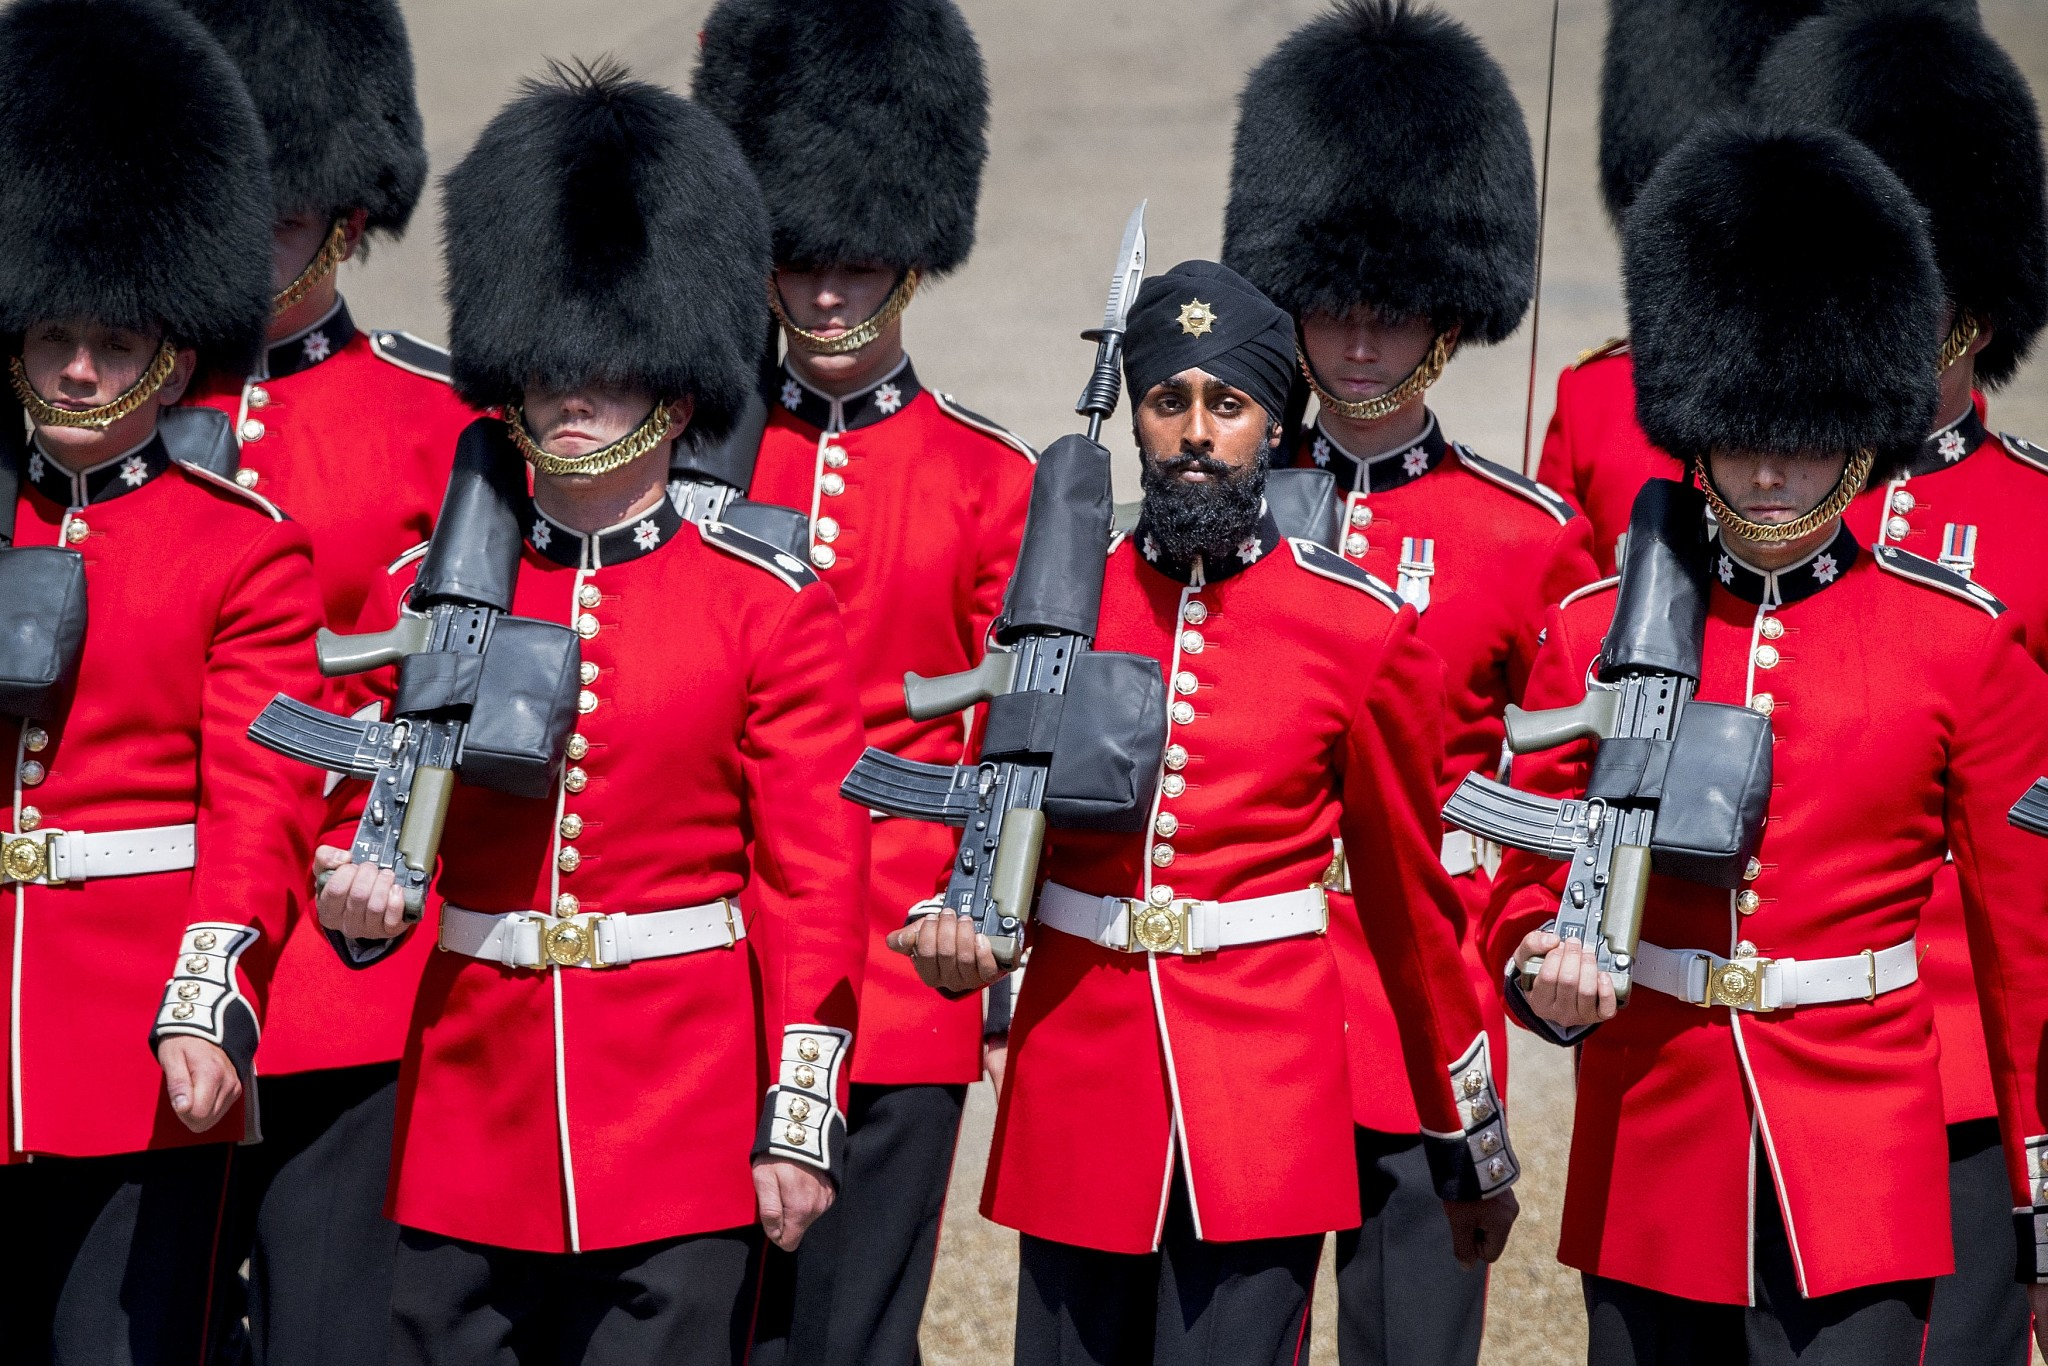 An inspirational picture of diversity in action at the Traditional Queen's Birthday 'trooping of the colours'.